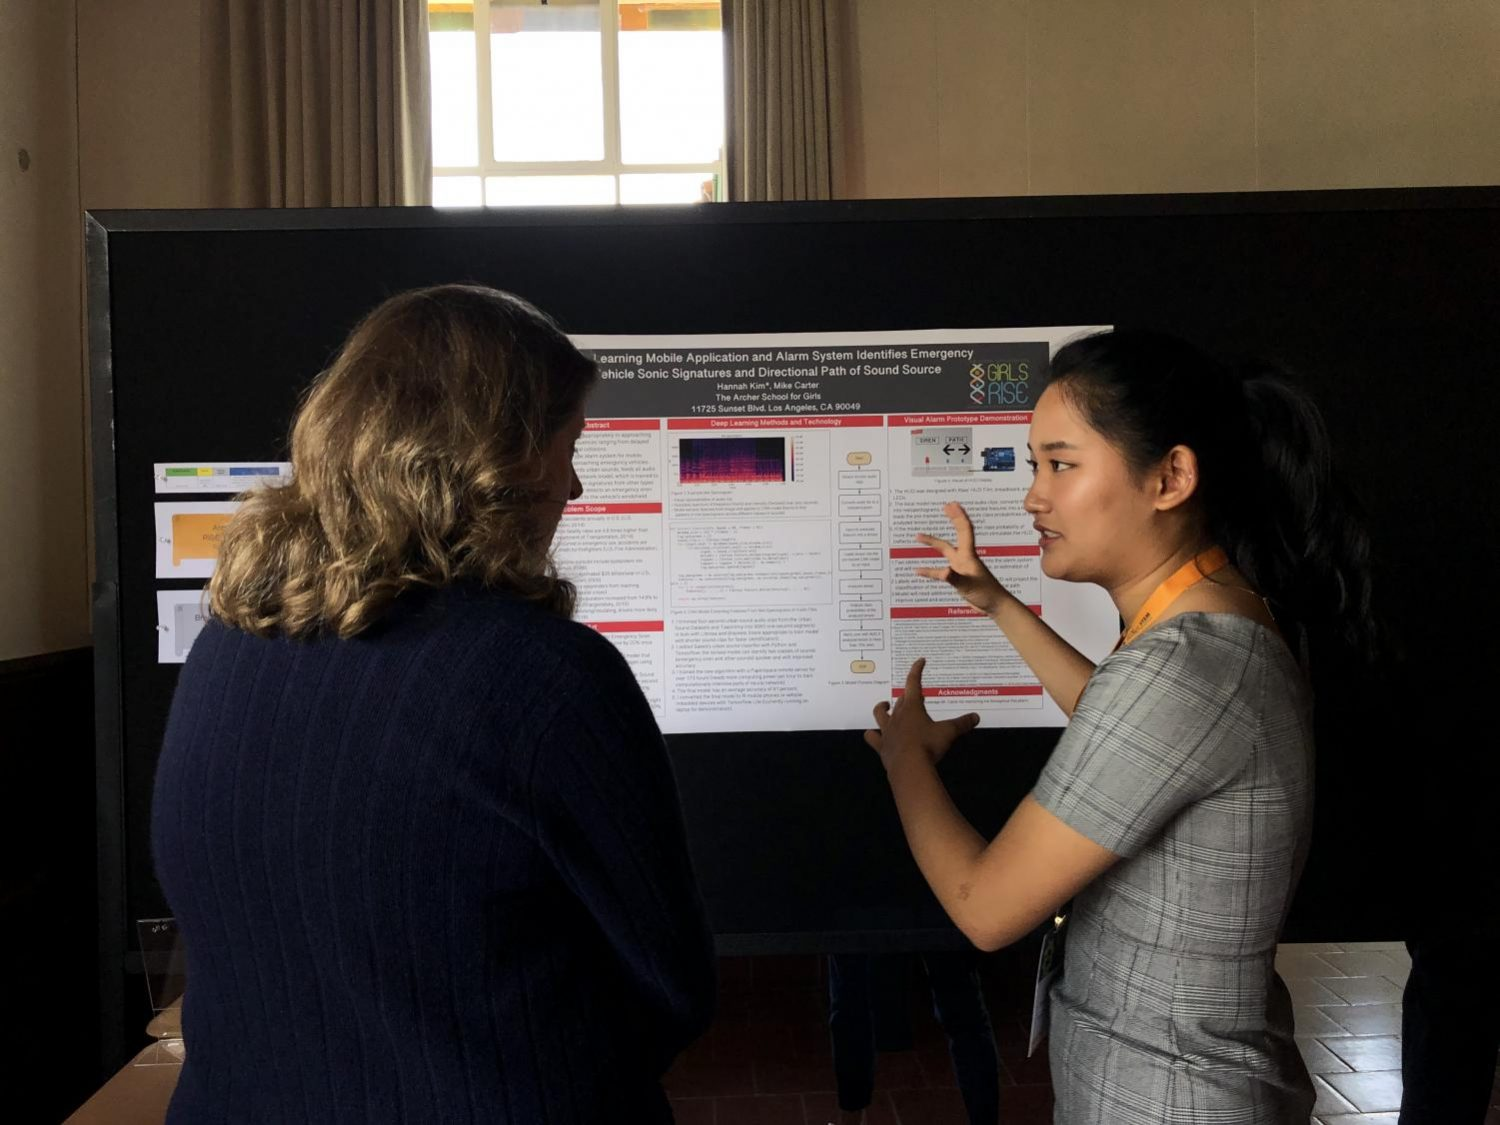 Junior Hannah Kim presents her design for an artificial intelligence mobile application and alarm system that identifies an emergency vehicle's siren. Annually, students present their research in the STEM fields at Archer's STEM conference.